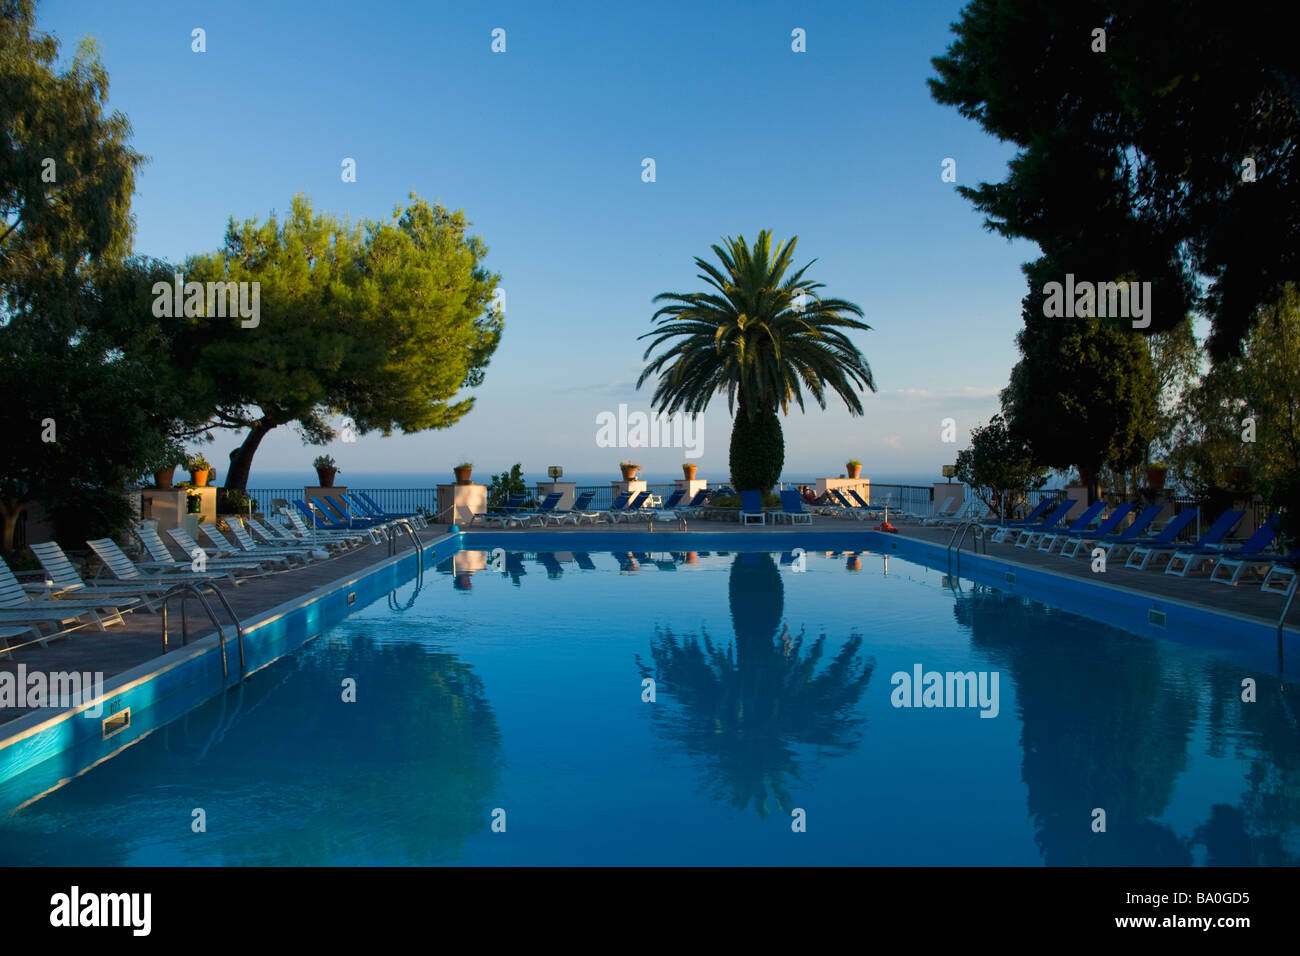 Excelsior Palace Hotel Outdoor Swimming Pool Taormina Sicily Italy Stock Photo Royalty Free